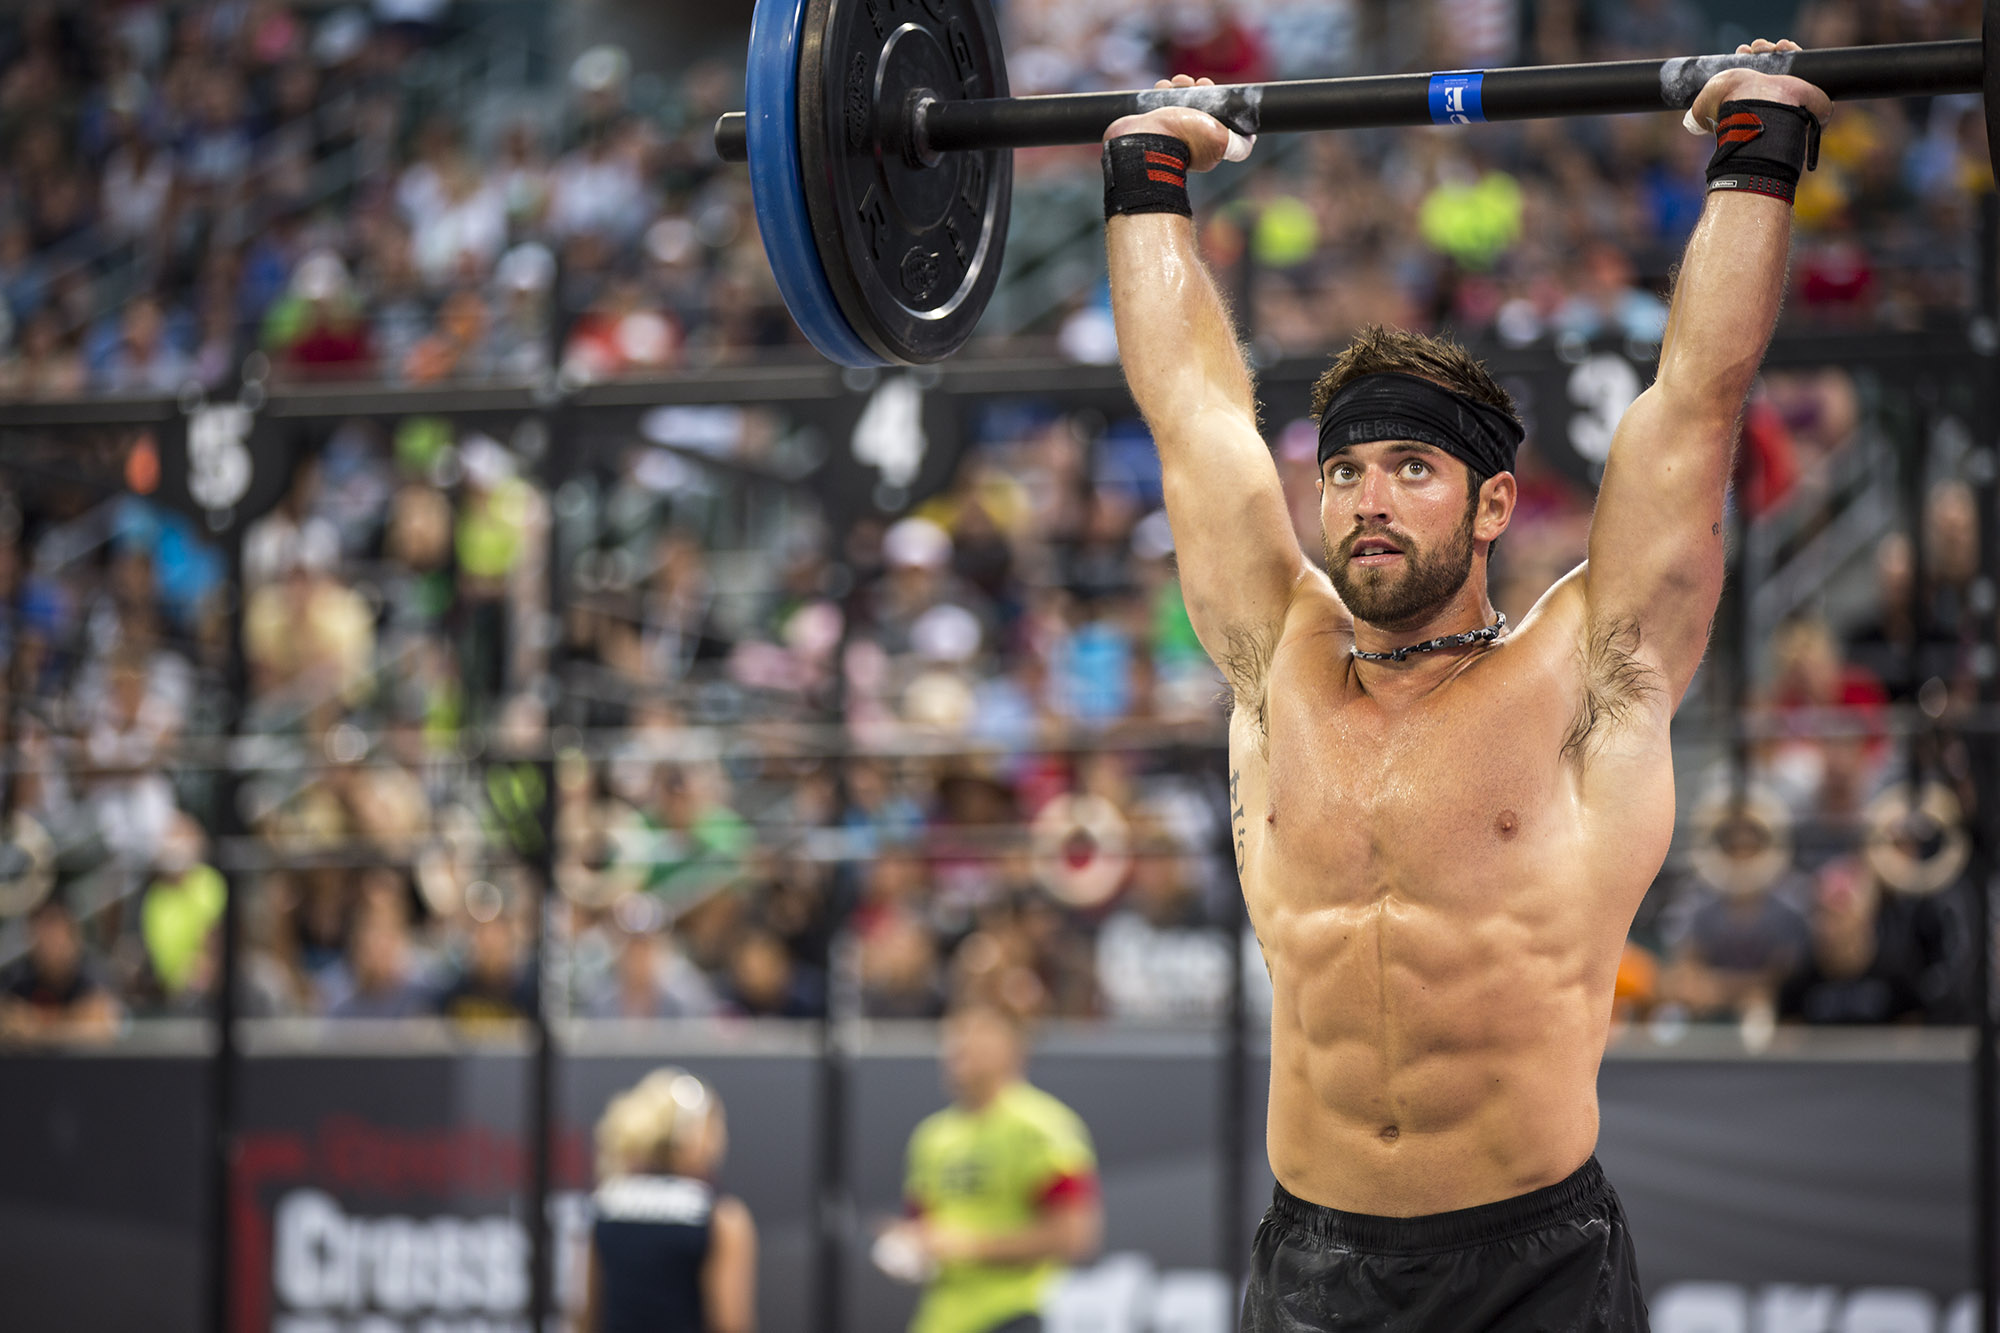 Rich Froning Wins Third Straight Crossfit Title   WhatTheHoff!